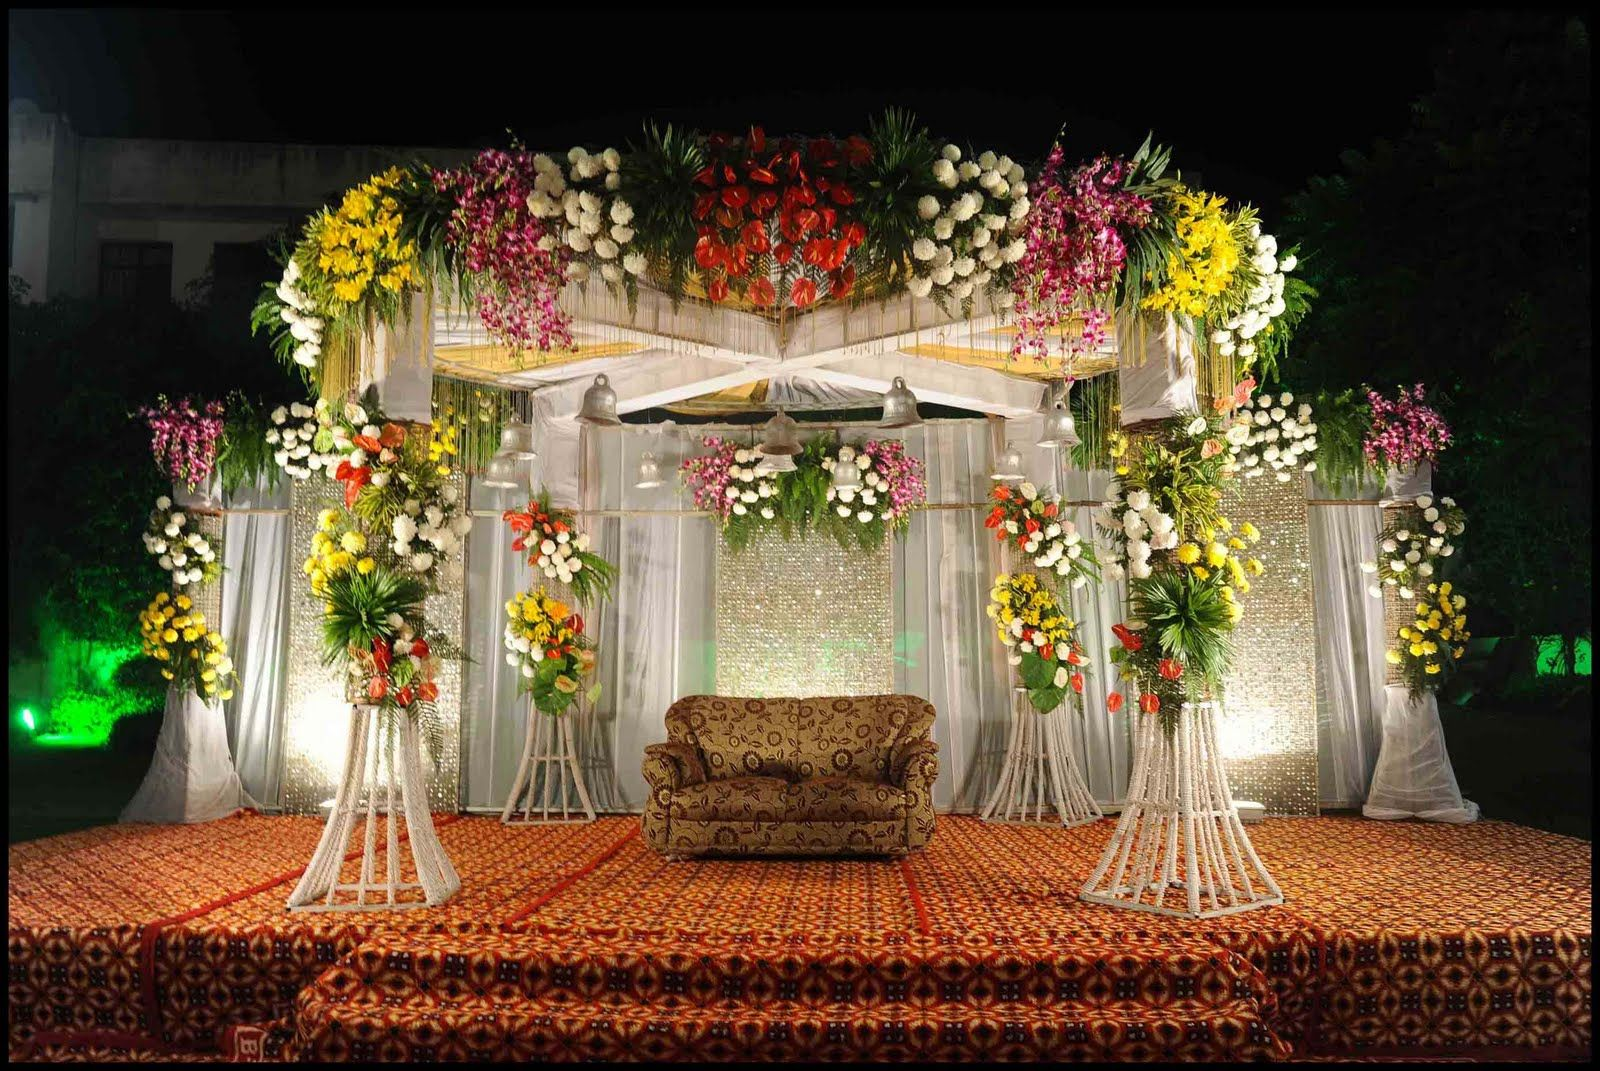 Best Wedding Reception Stage Decoration Ideas For 2021 | Shaadi Plans